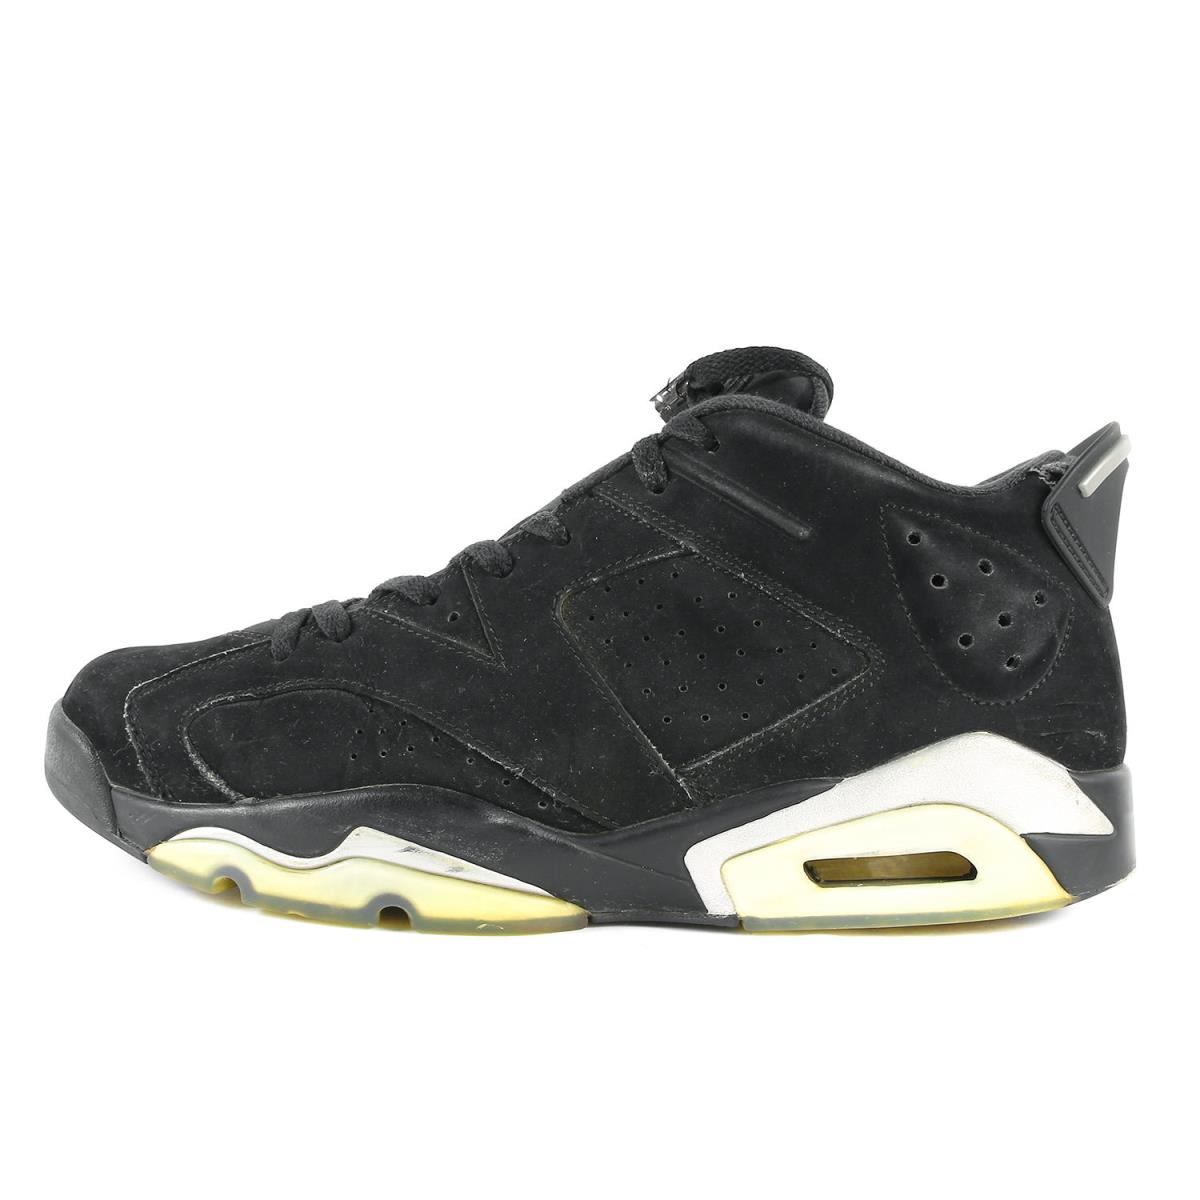 reputable site 499d2 74b2e NIKE (Nike) AIR JORDAN 6 RETRO LOW (304,401-003) black X metallic silver  US12(30cm)